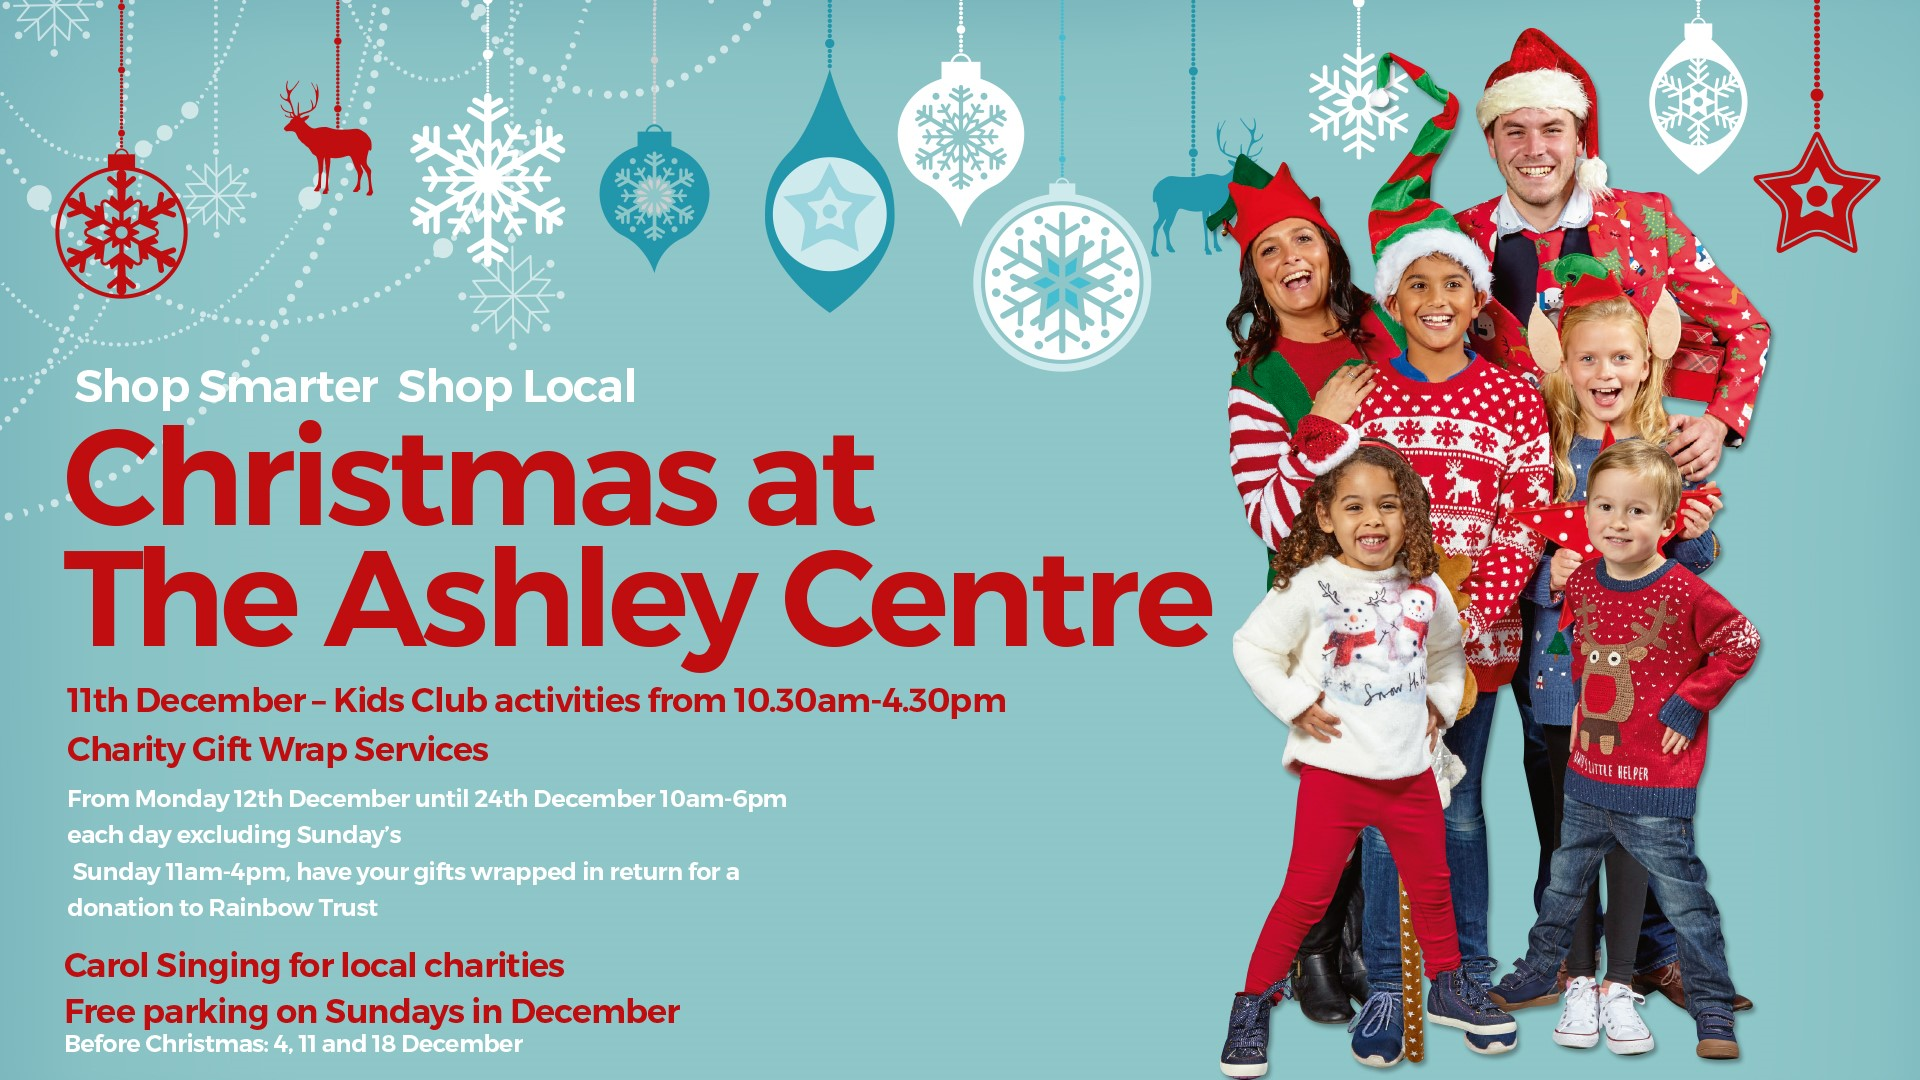 Christmas at The Ashley Centre